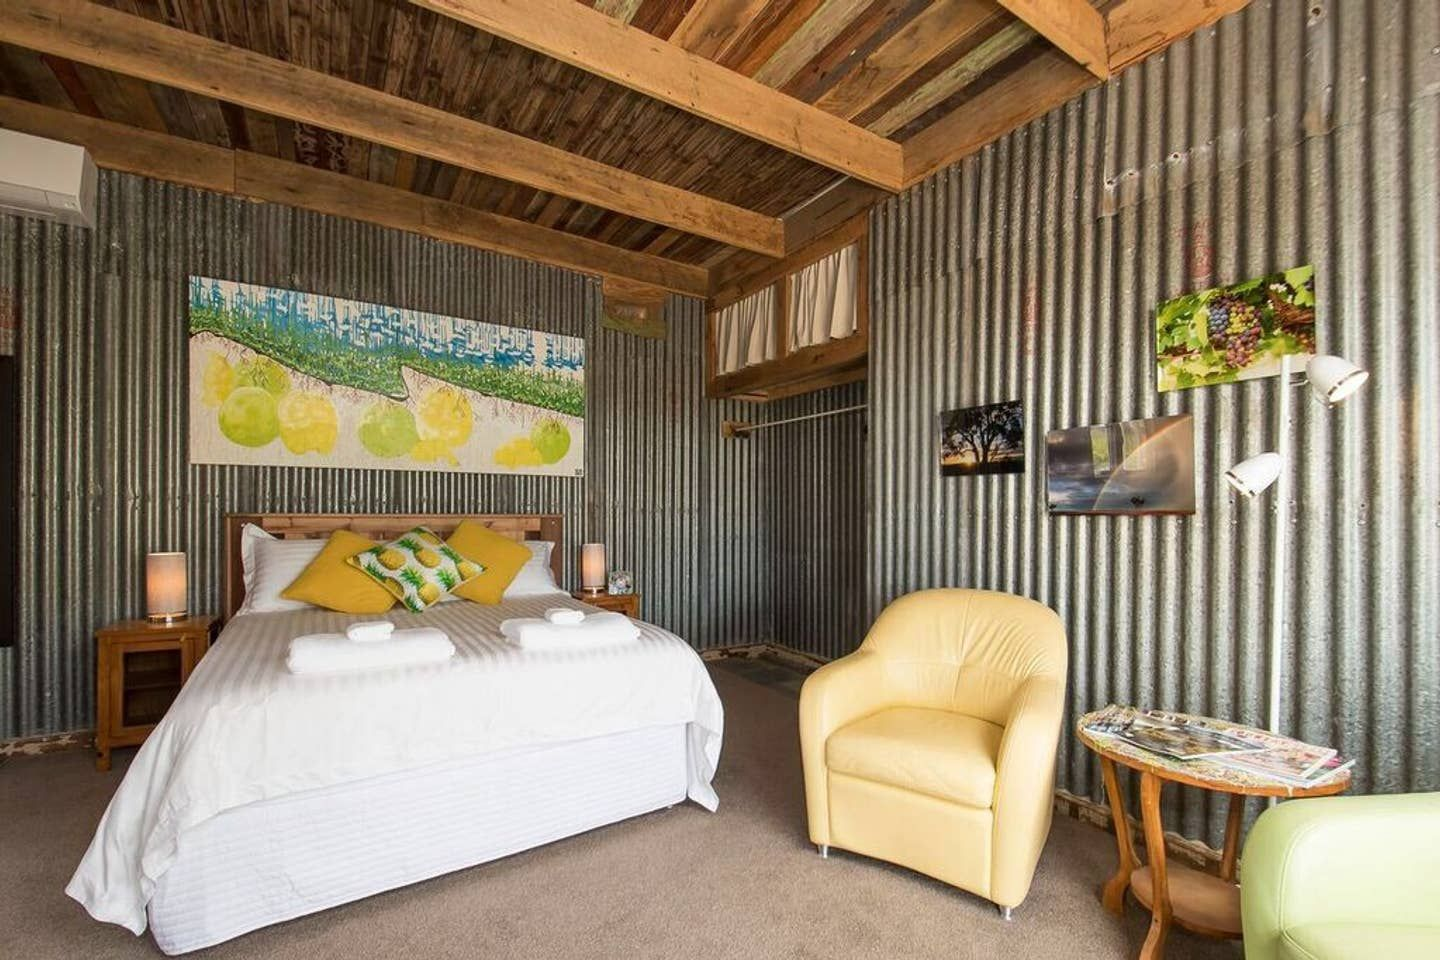 Living in a shed with metal walls